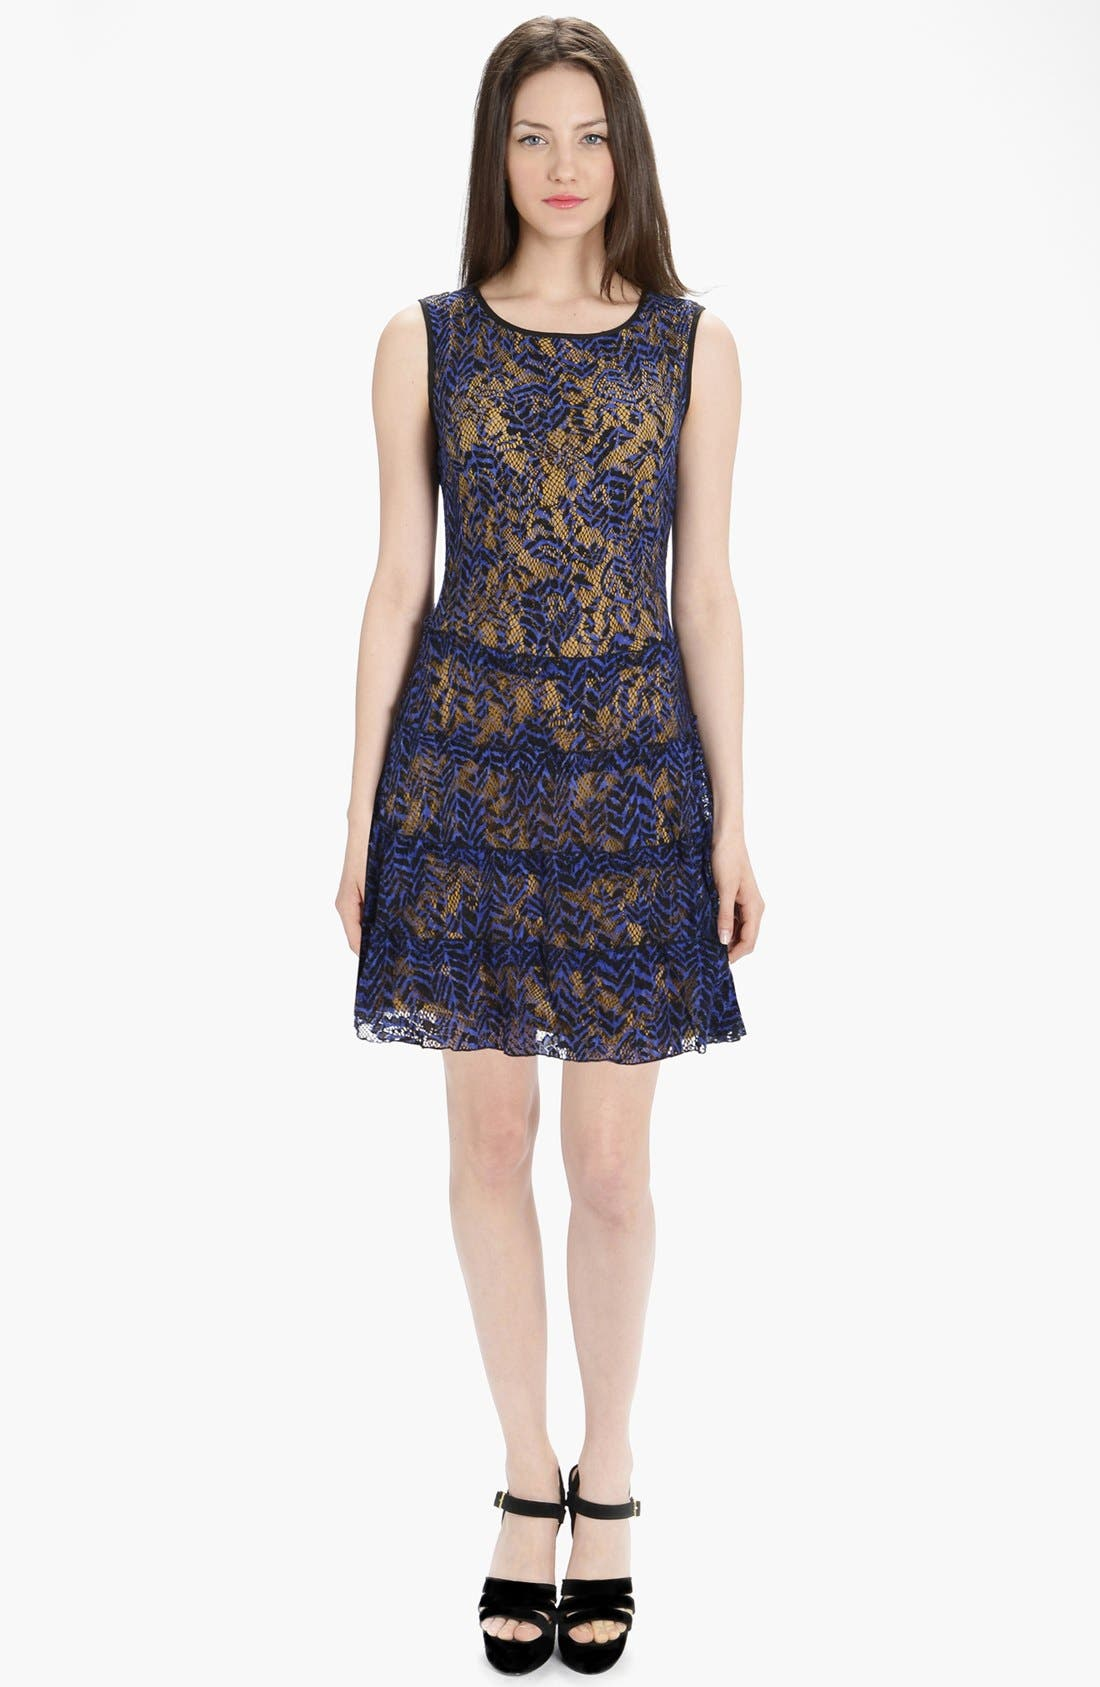 Alternate Image 1 Selected - LABEL by five twelve Tiered Lace Fit & Flare Dress